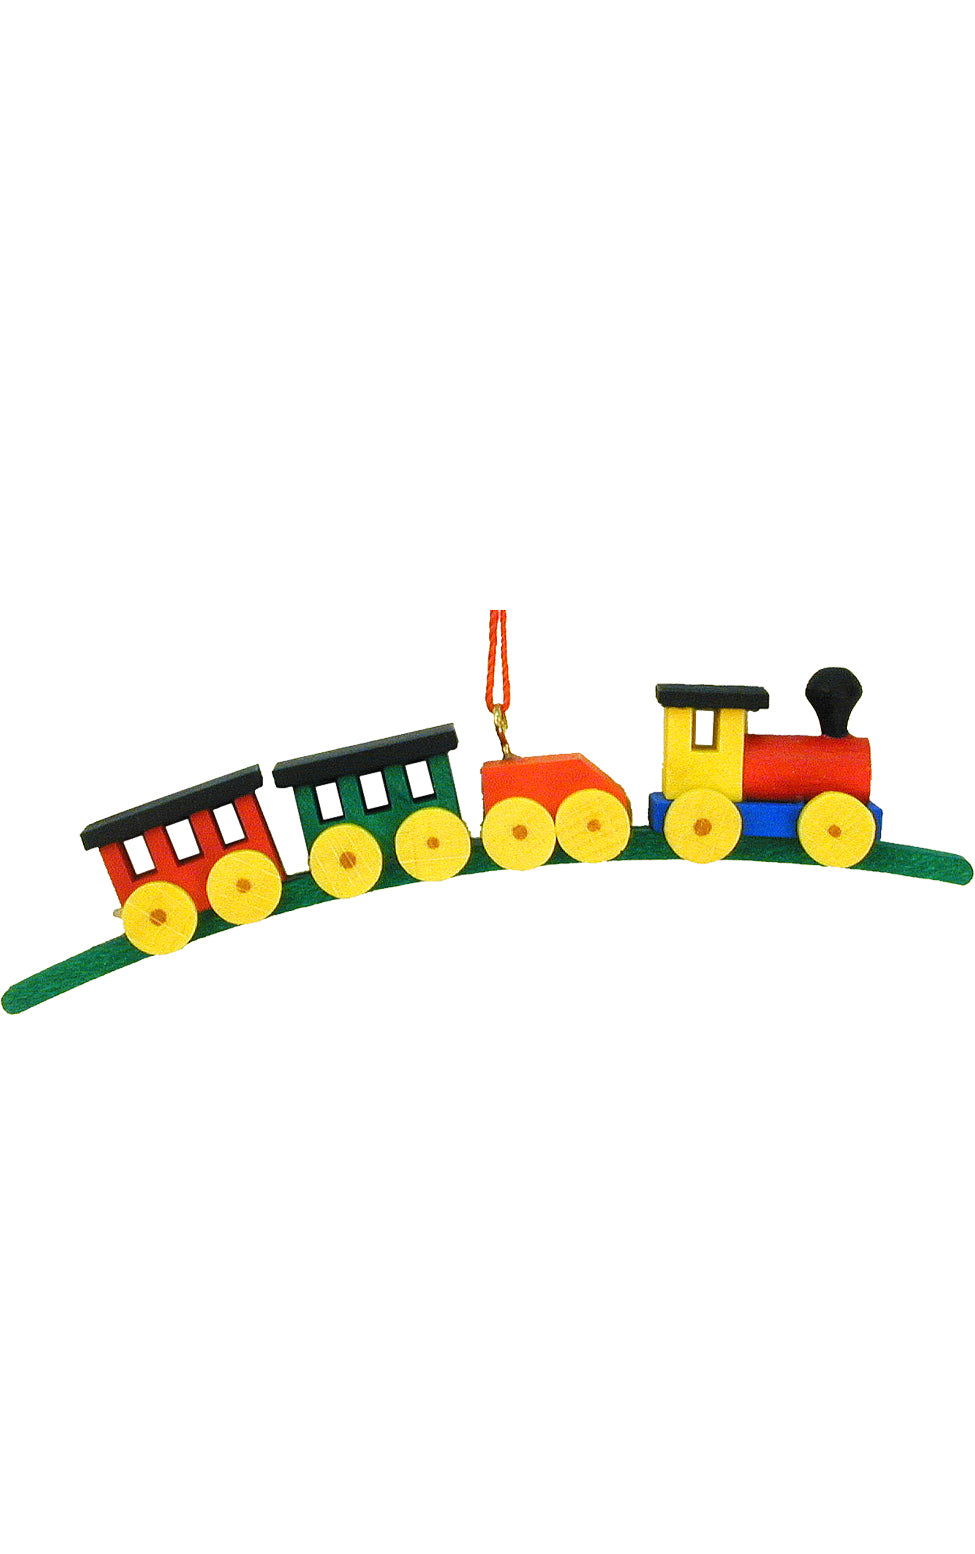 Christian Ulbricht Ornament - Train Medium Size